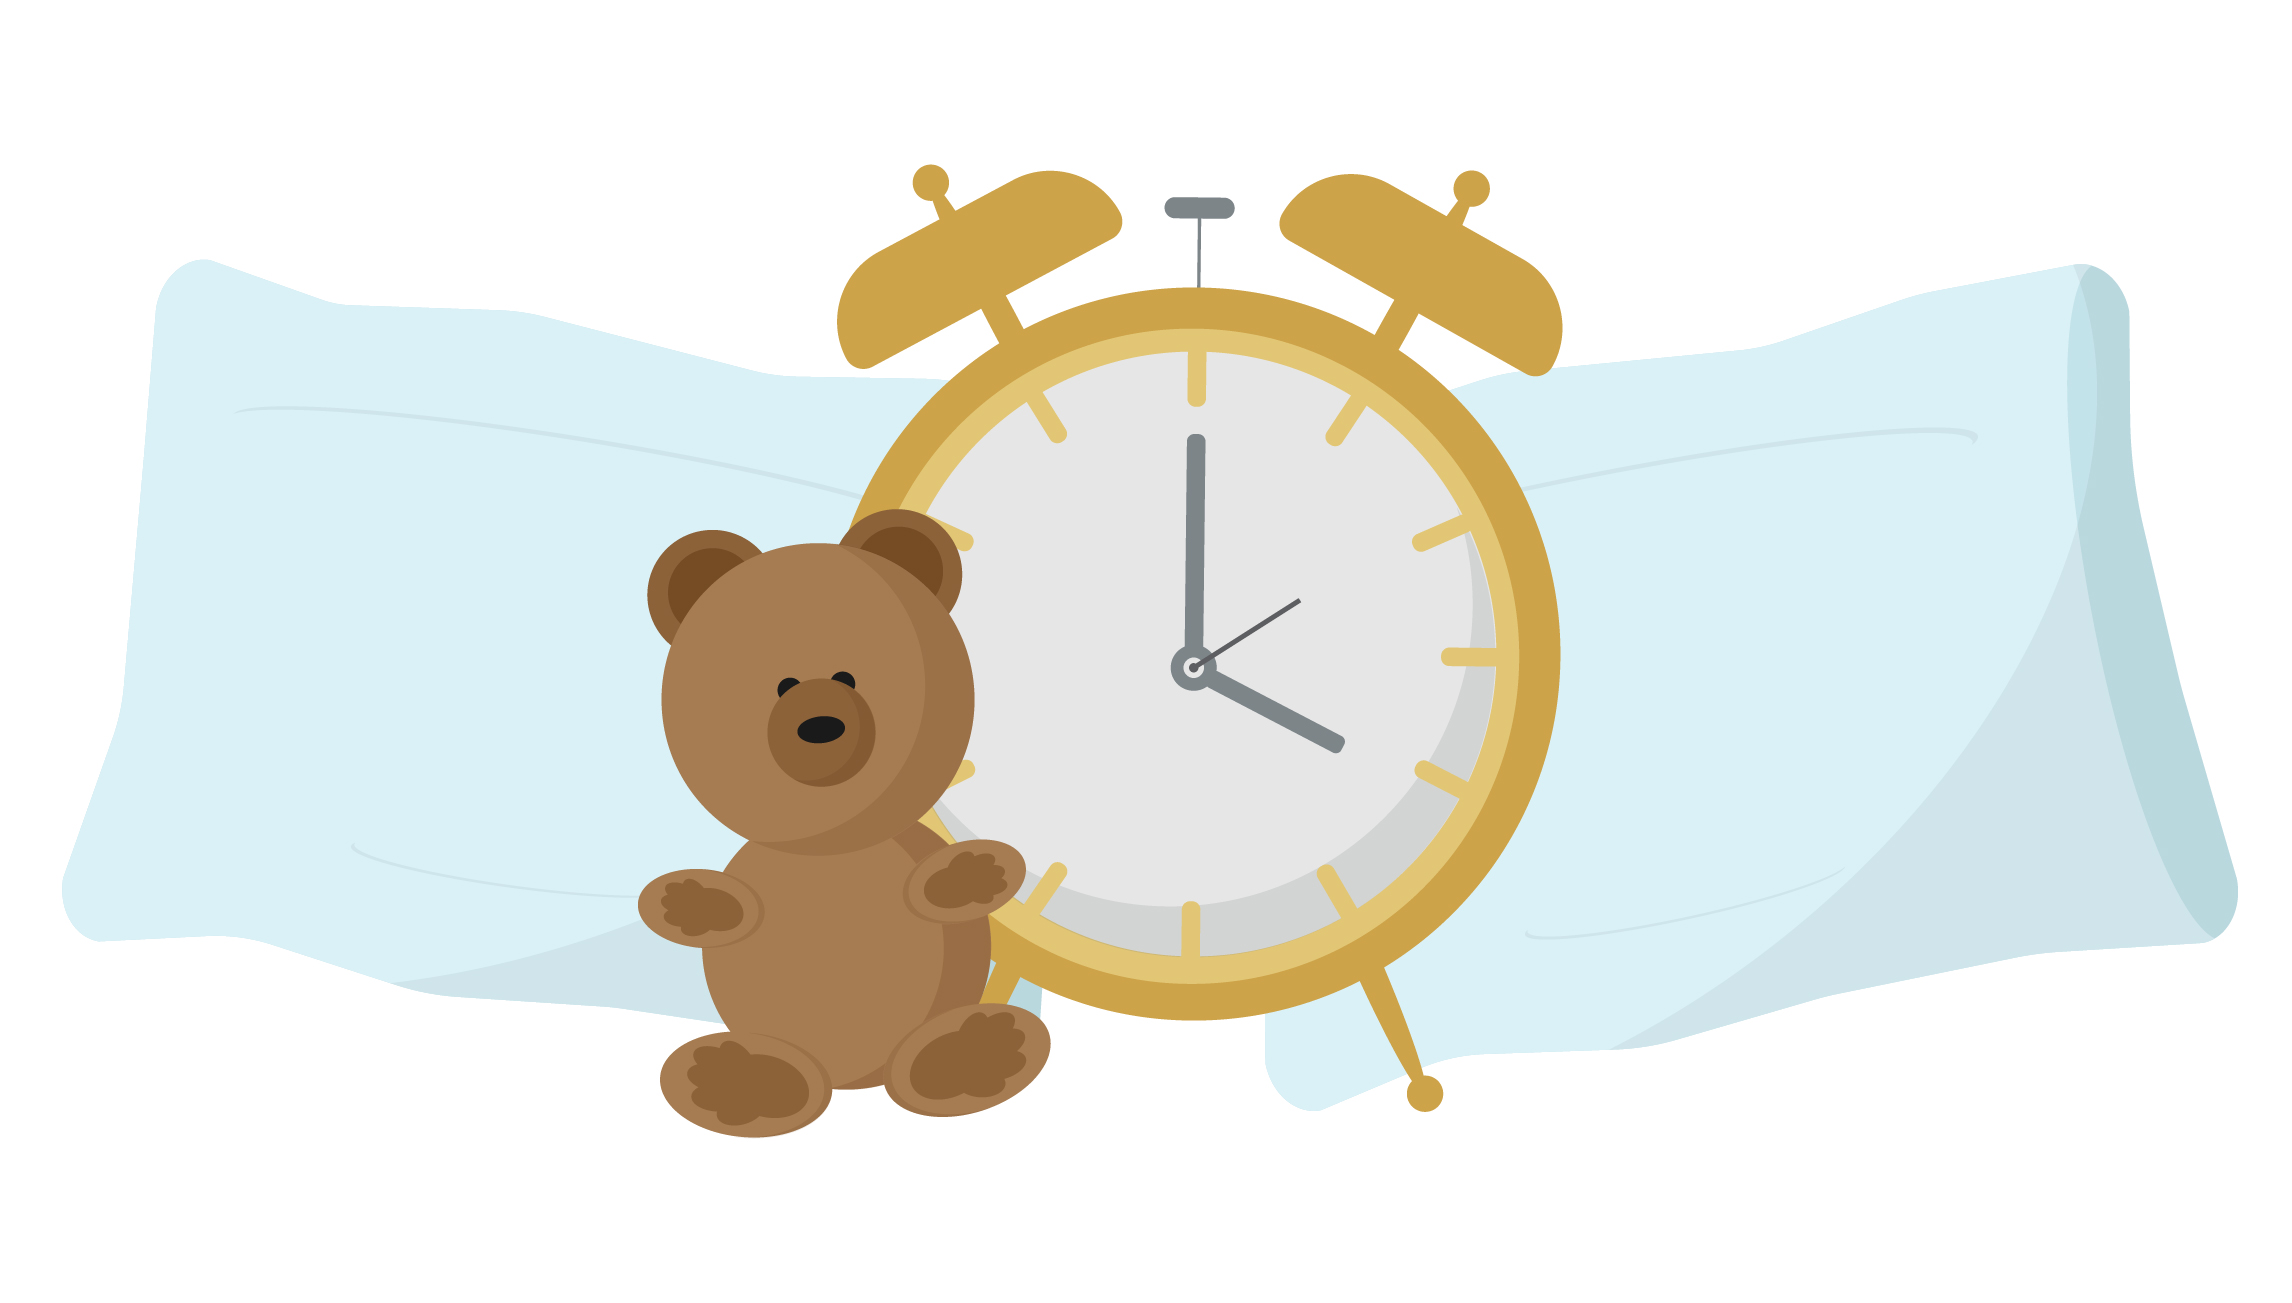 Bedtime Alarm clock pillows and teddy bear